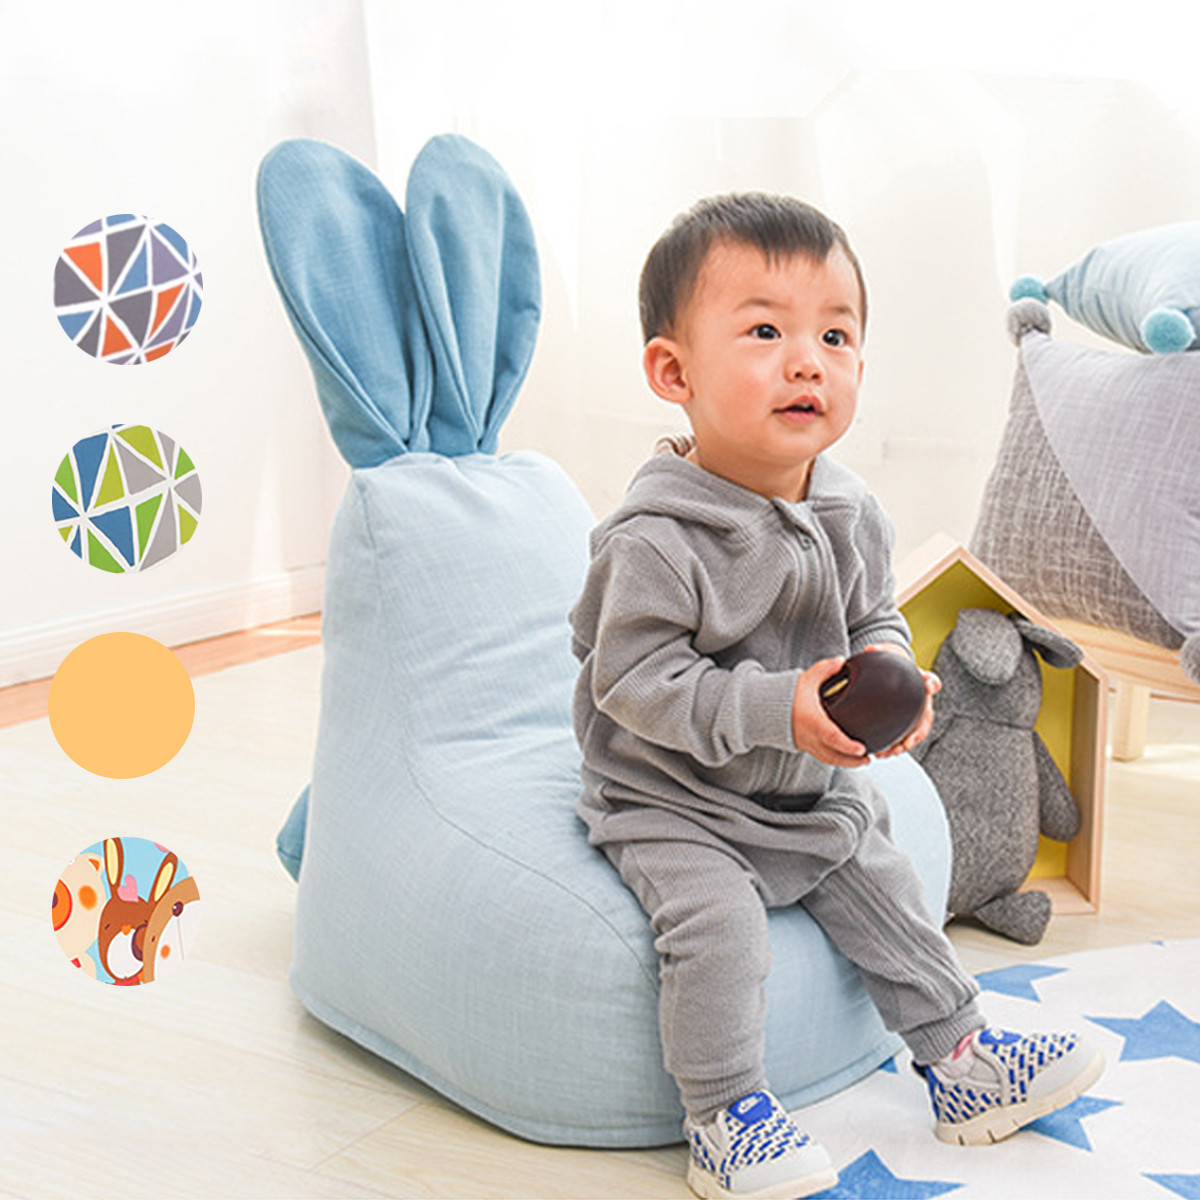 With Filler Nordic Baby Bean Bag Chair Pouf Kids Sofa Baby Seat Pillow Portable Chairs for Baby Infant Room Decor Child's toys